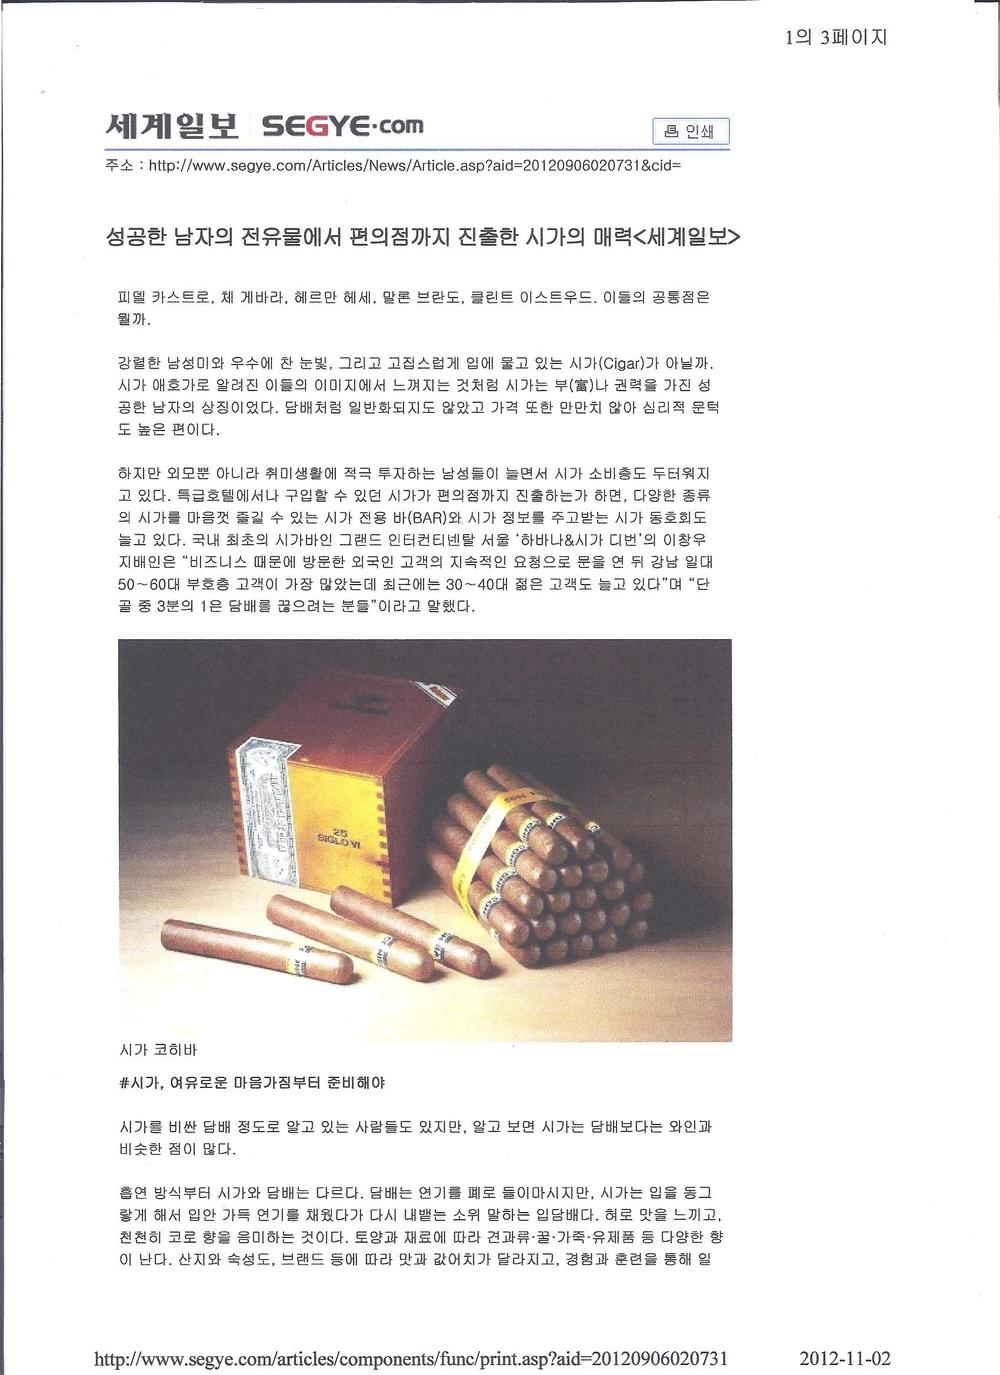 2012-9 Segye article 1.jpg